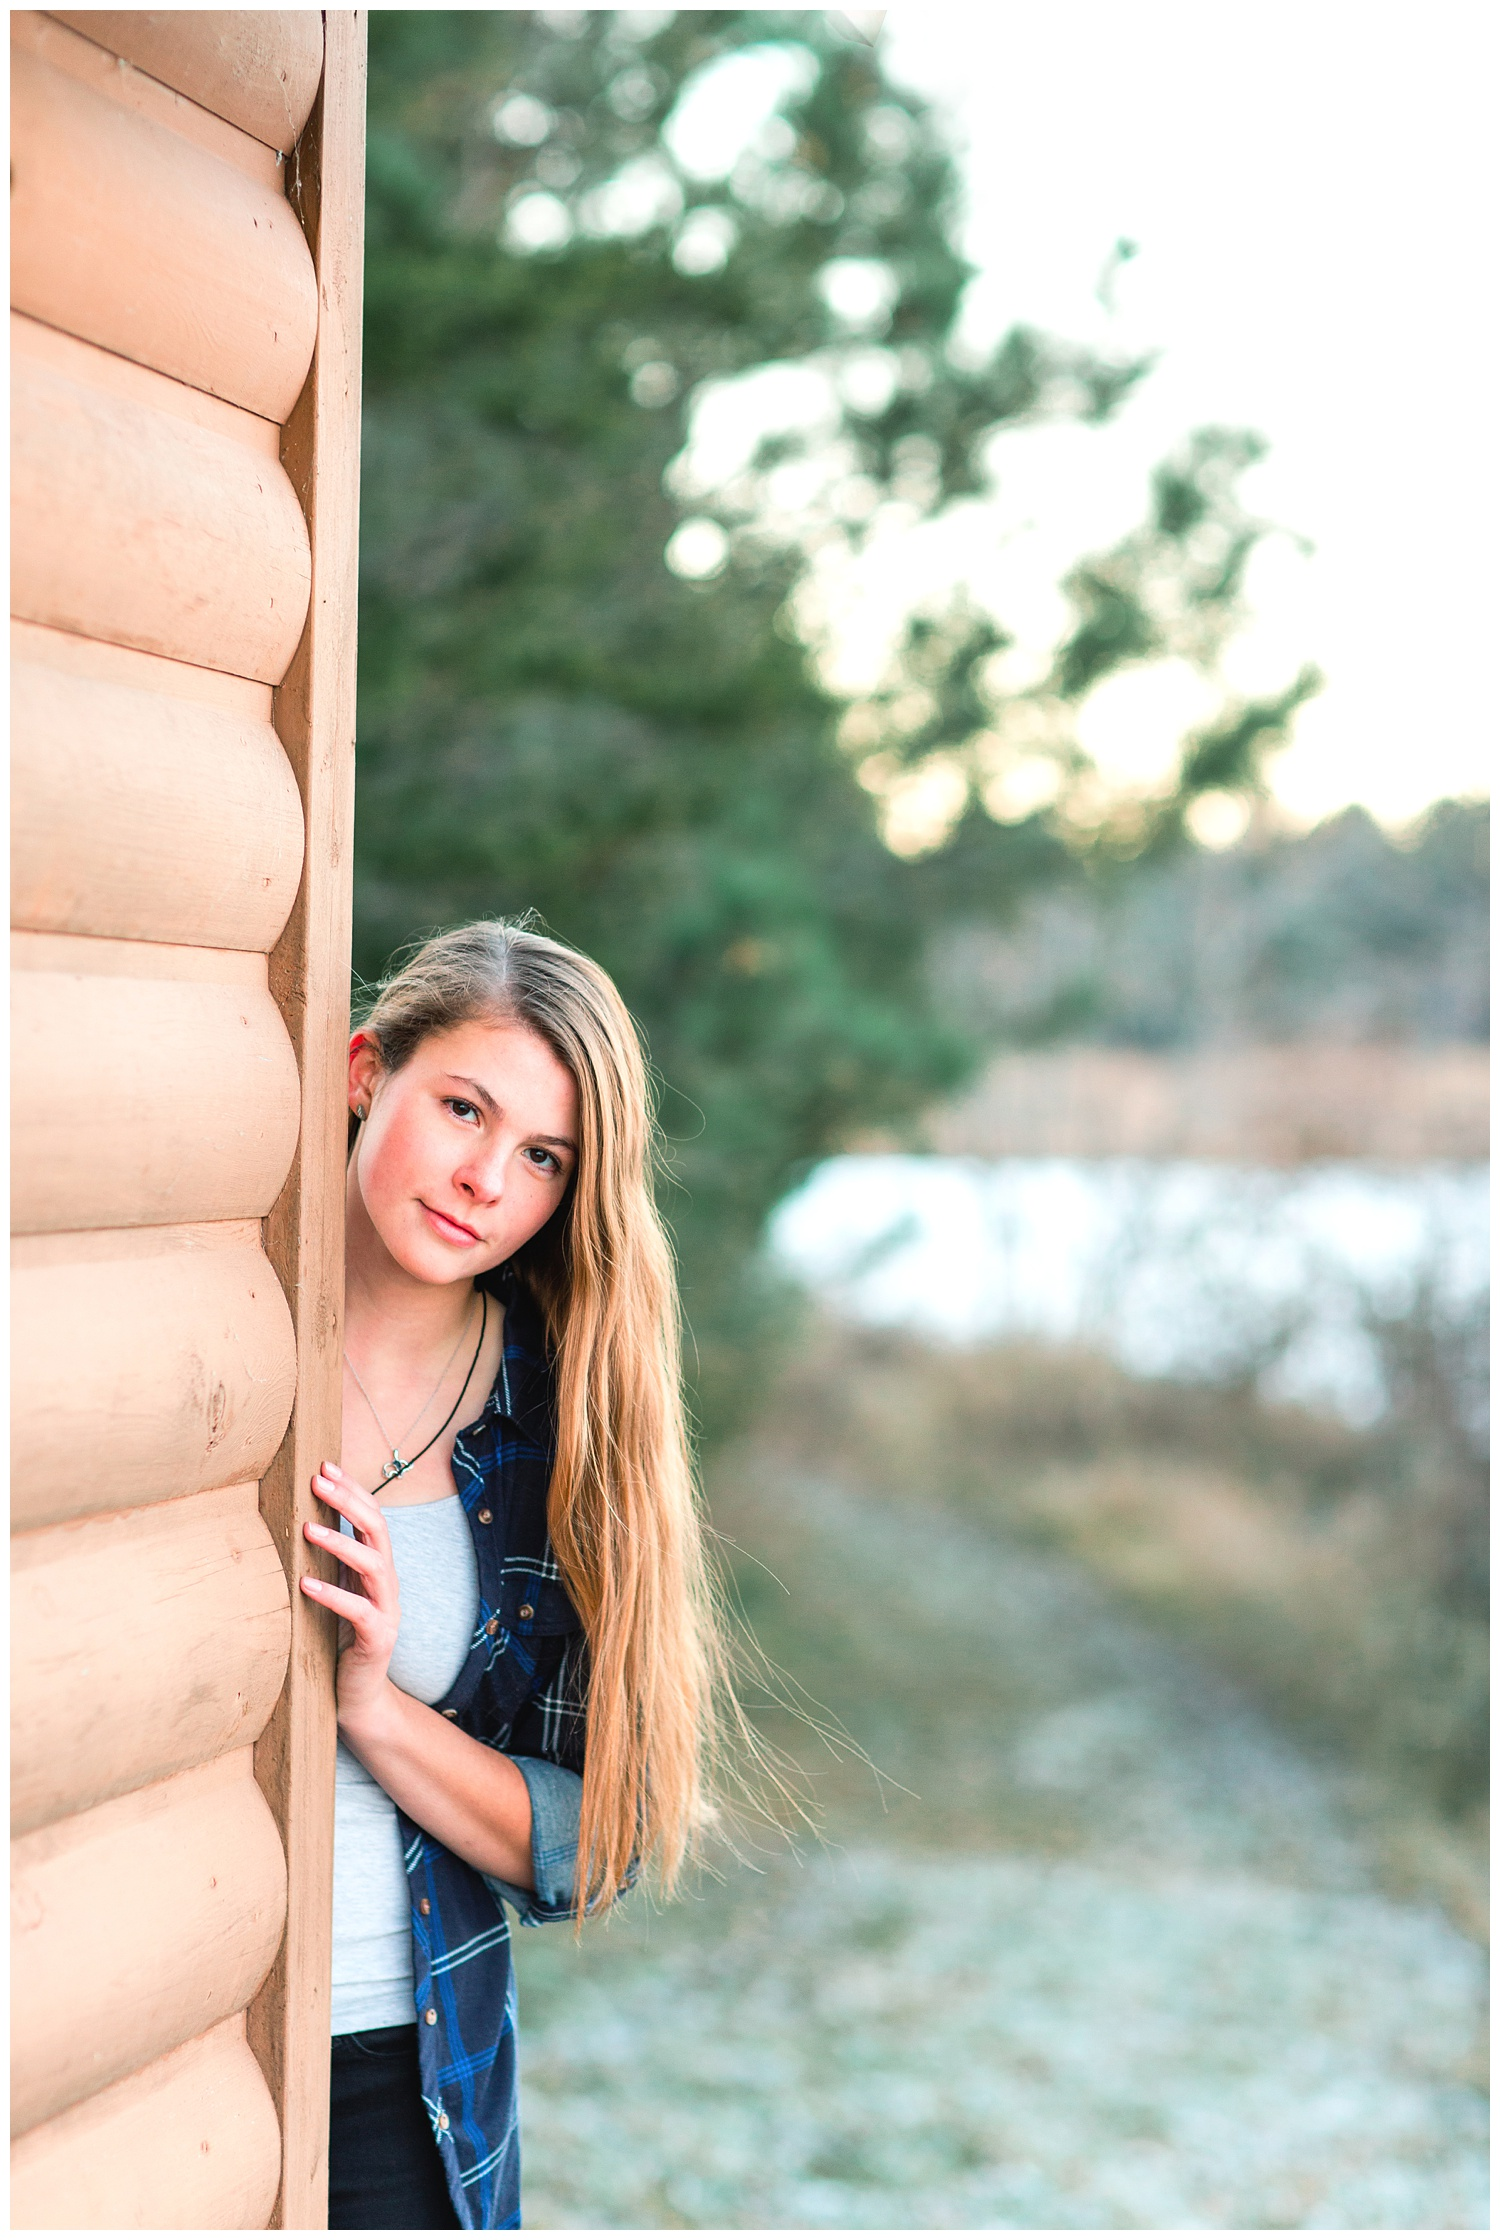 Senior girl peeking out from behind a wood building in a park with a lake during the fall | Iowa Senior Photographer | CB Studio